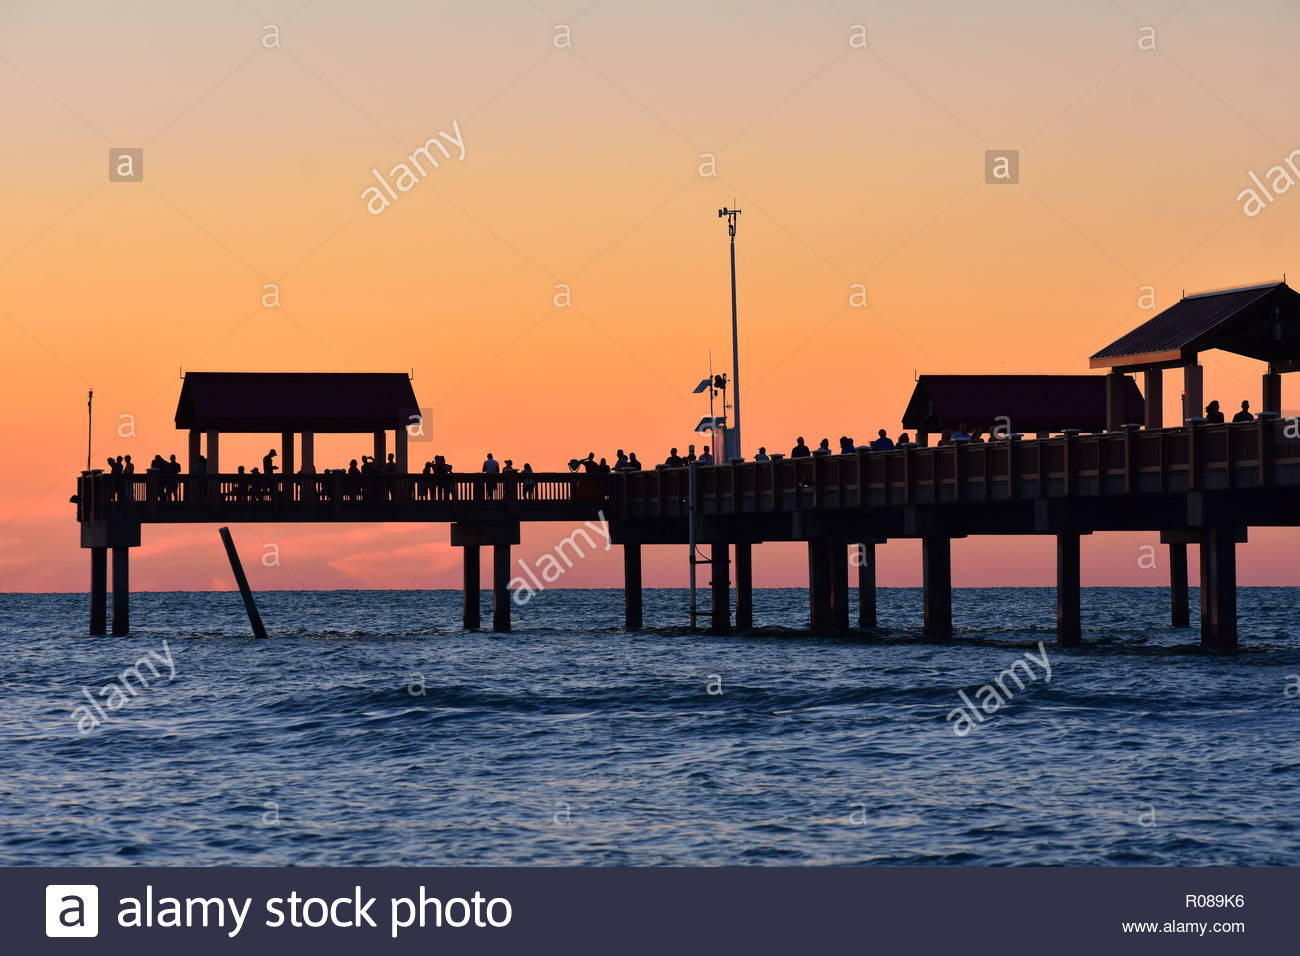 Clearwater Florida October 212018 Pier 60 on colorful sunset 1300x956